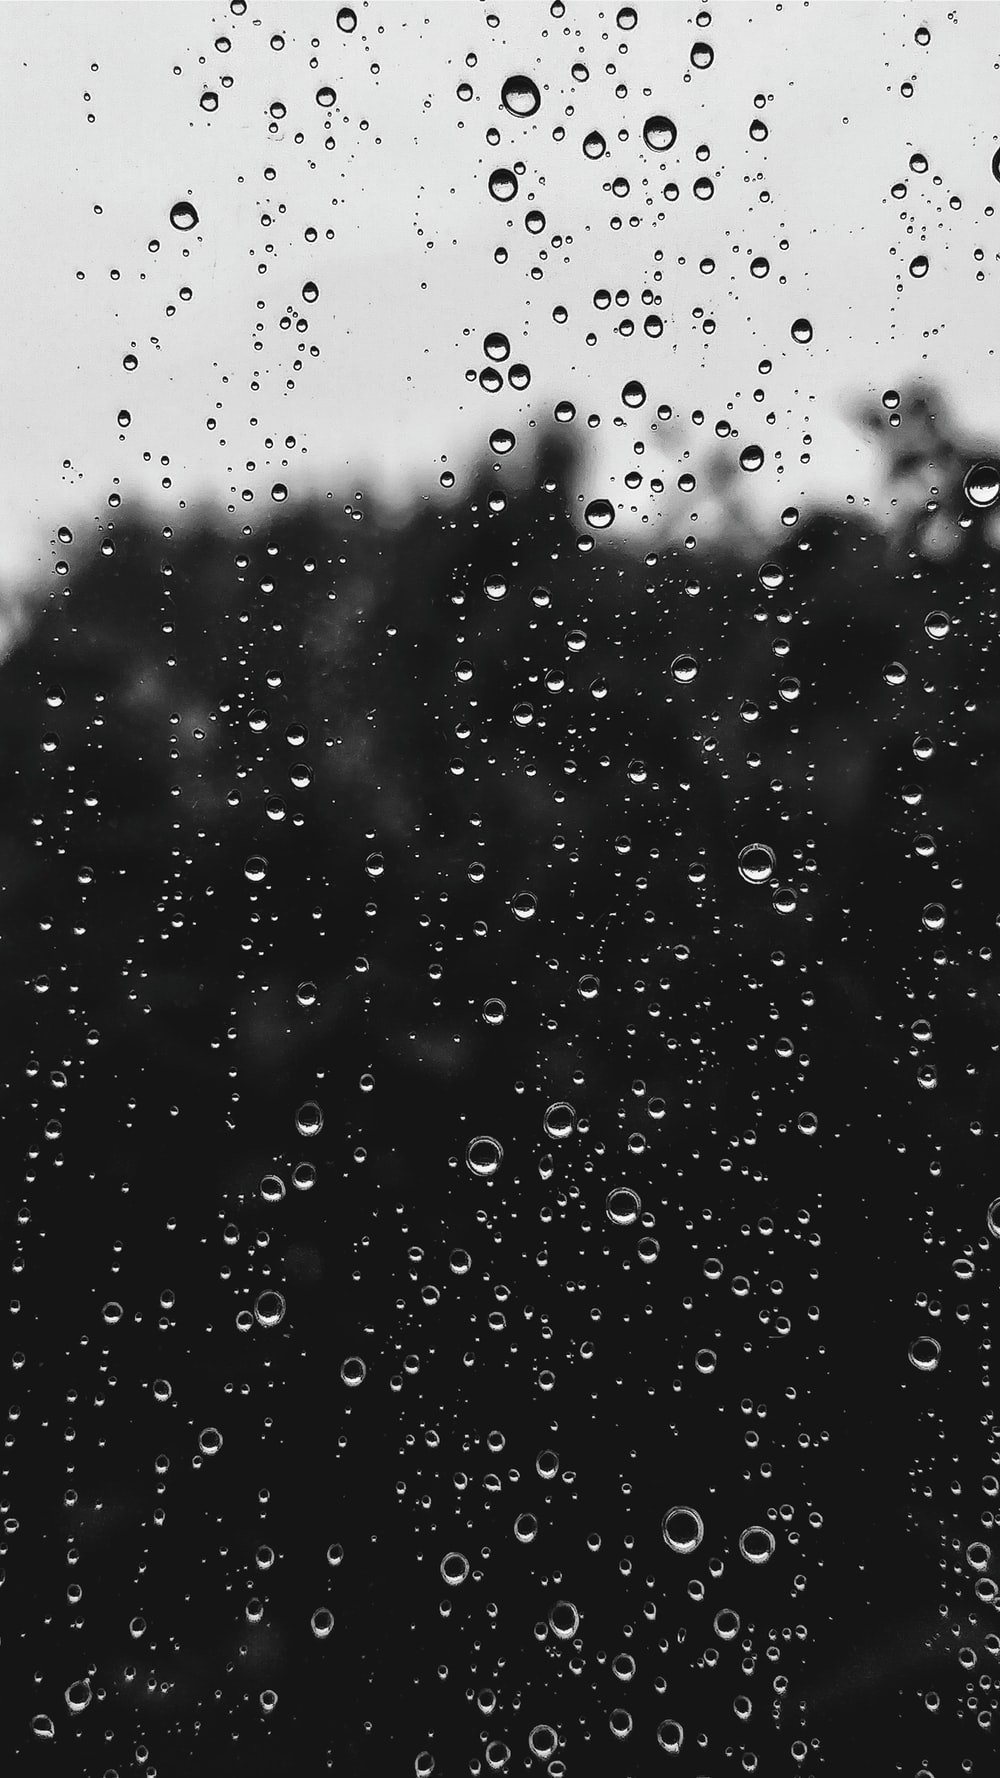 350 Rain Wallpapers [HD] Download Images Stock Photos On 1000x1778